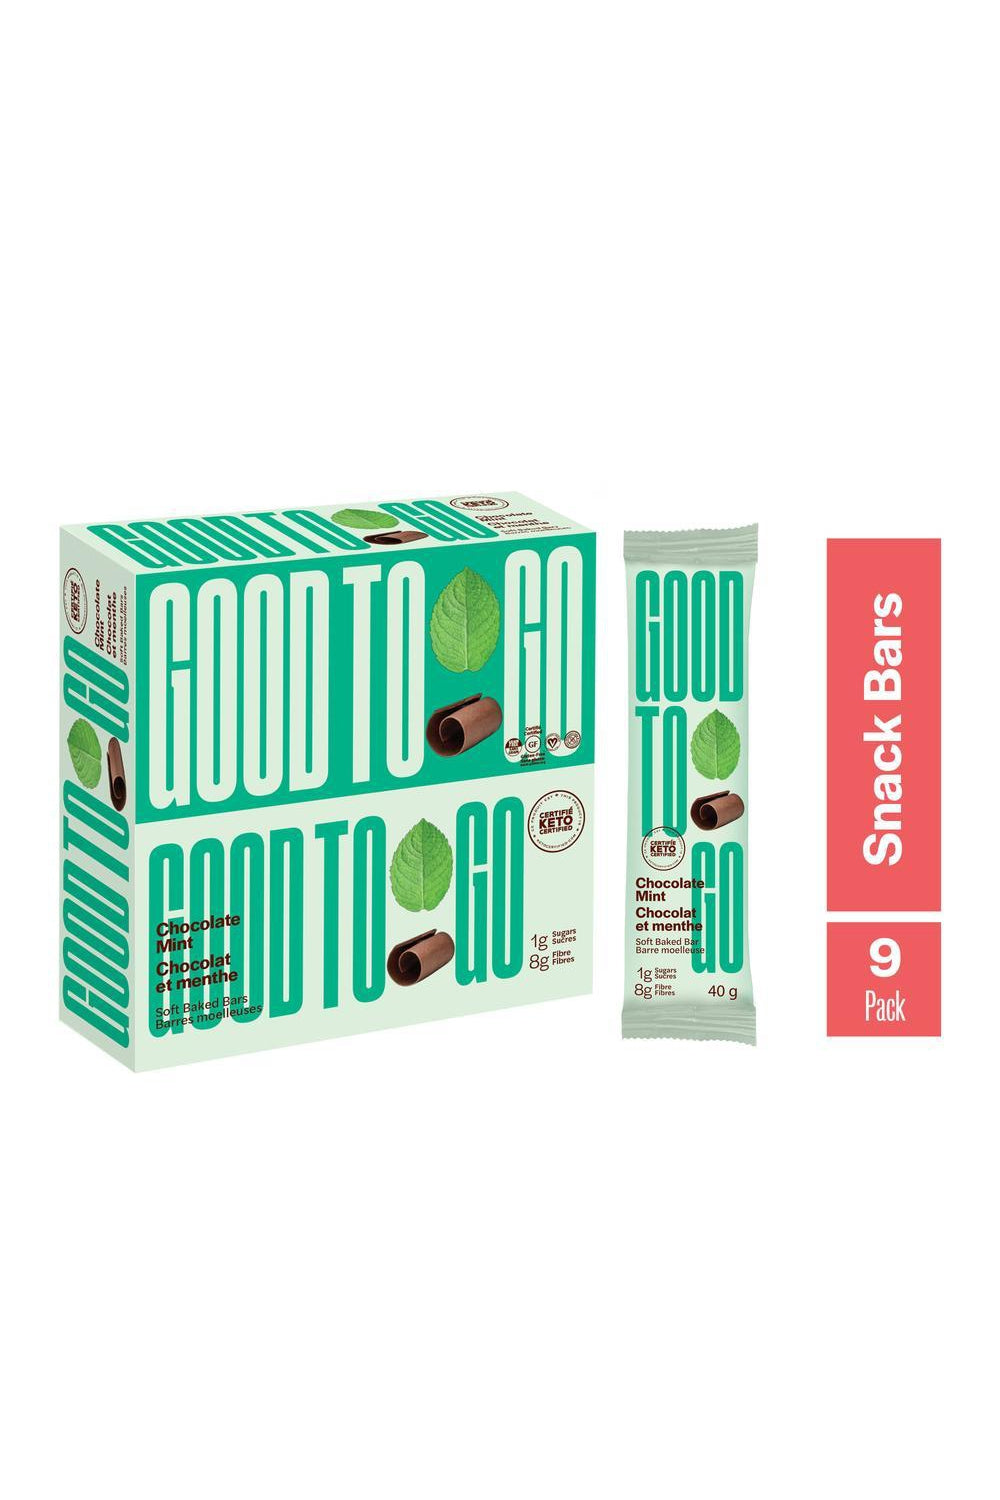 Good To Go Chocolate Mint Snack Bar 40g (9 Pack)